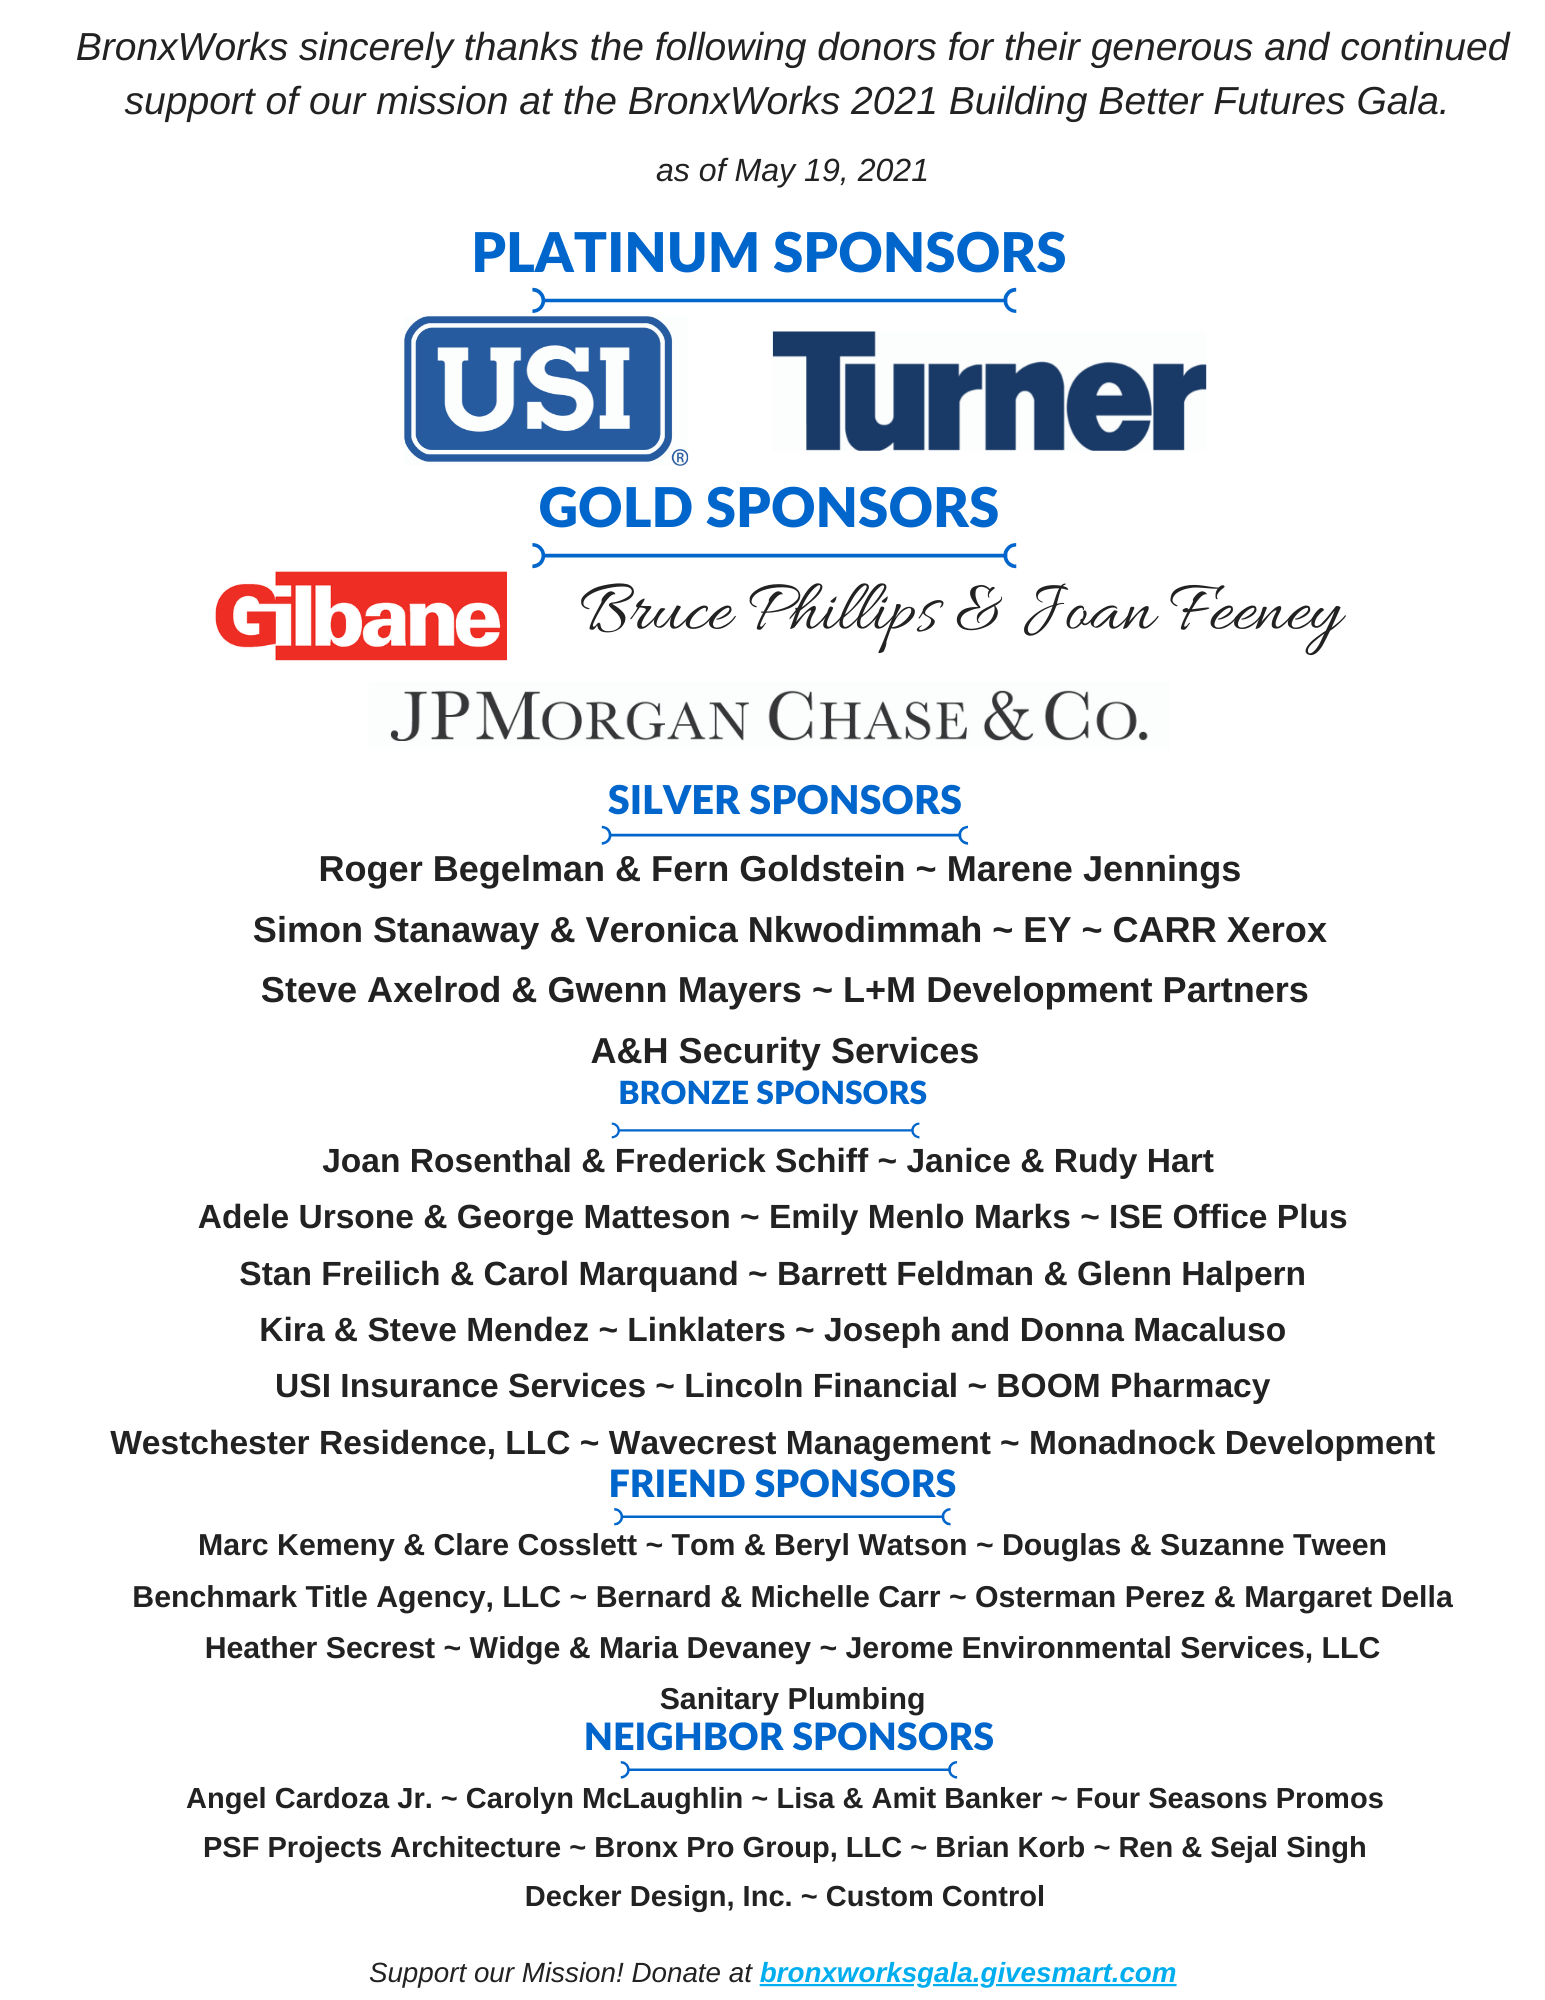 List of sponsors for the 2021 Building Better Futures Gala